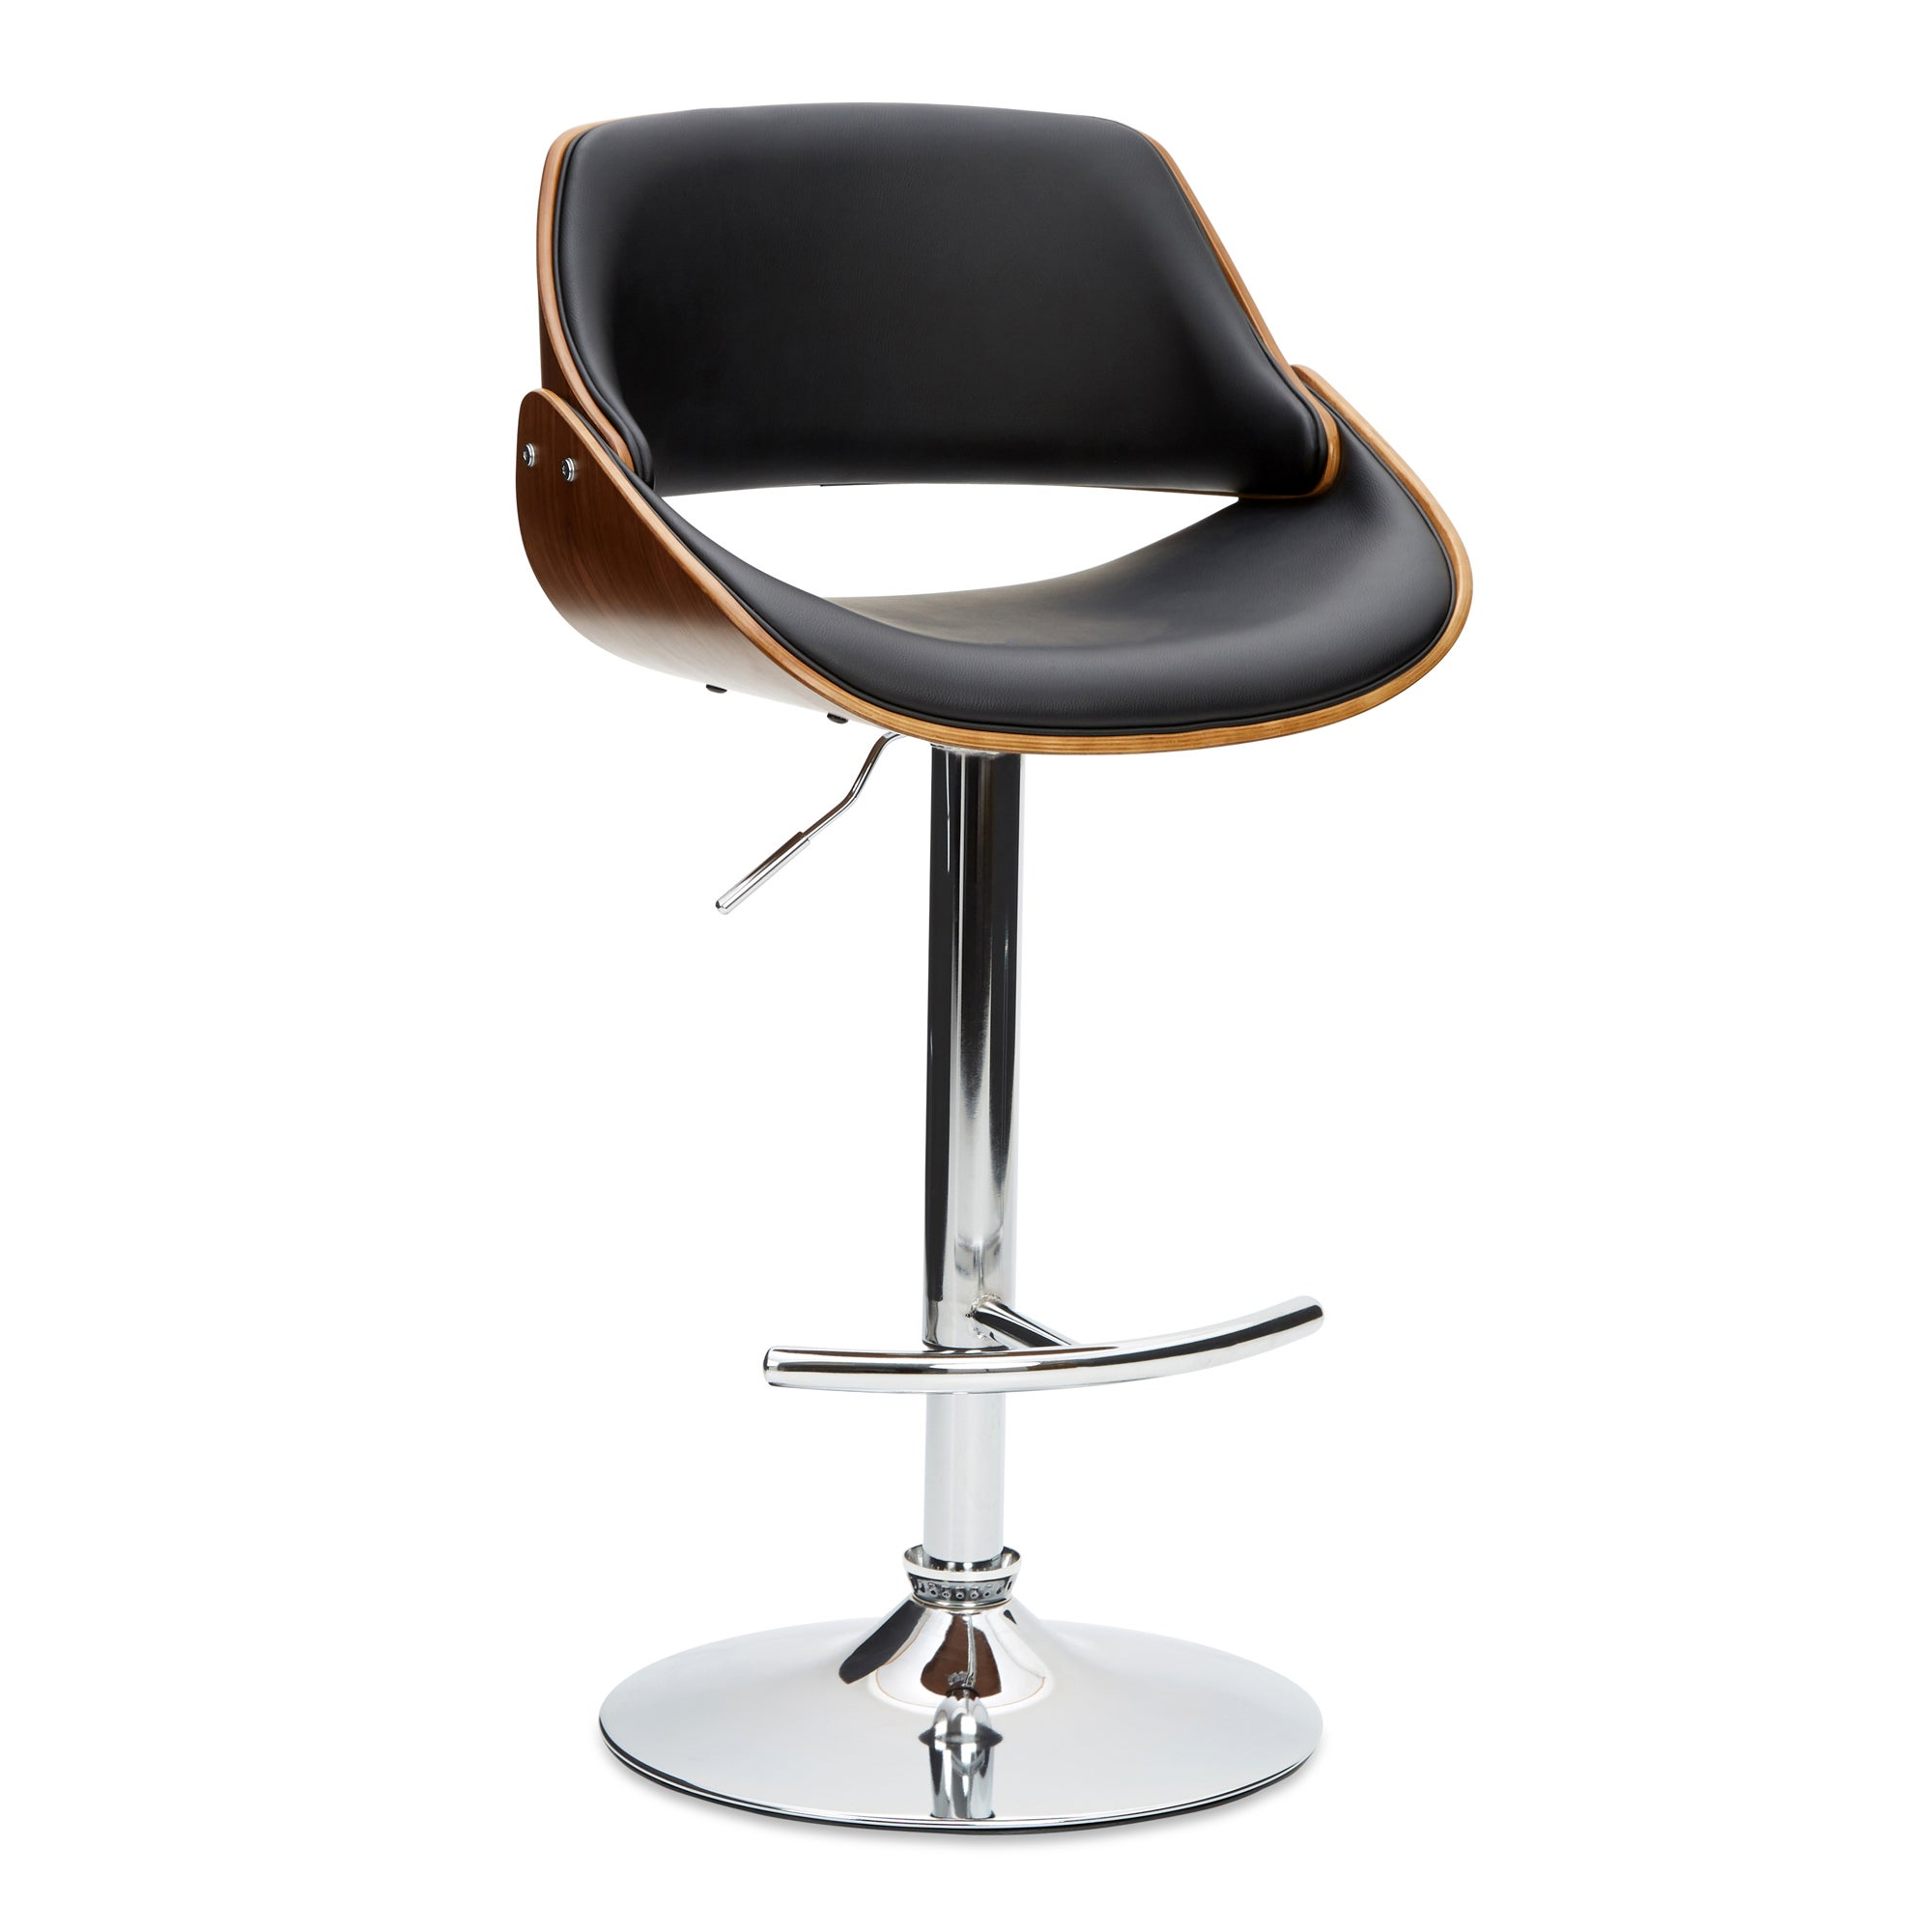 Trento Bar Stool Black PU Leather Black, Brown and Silver